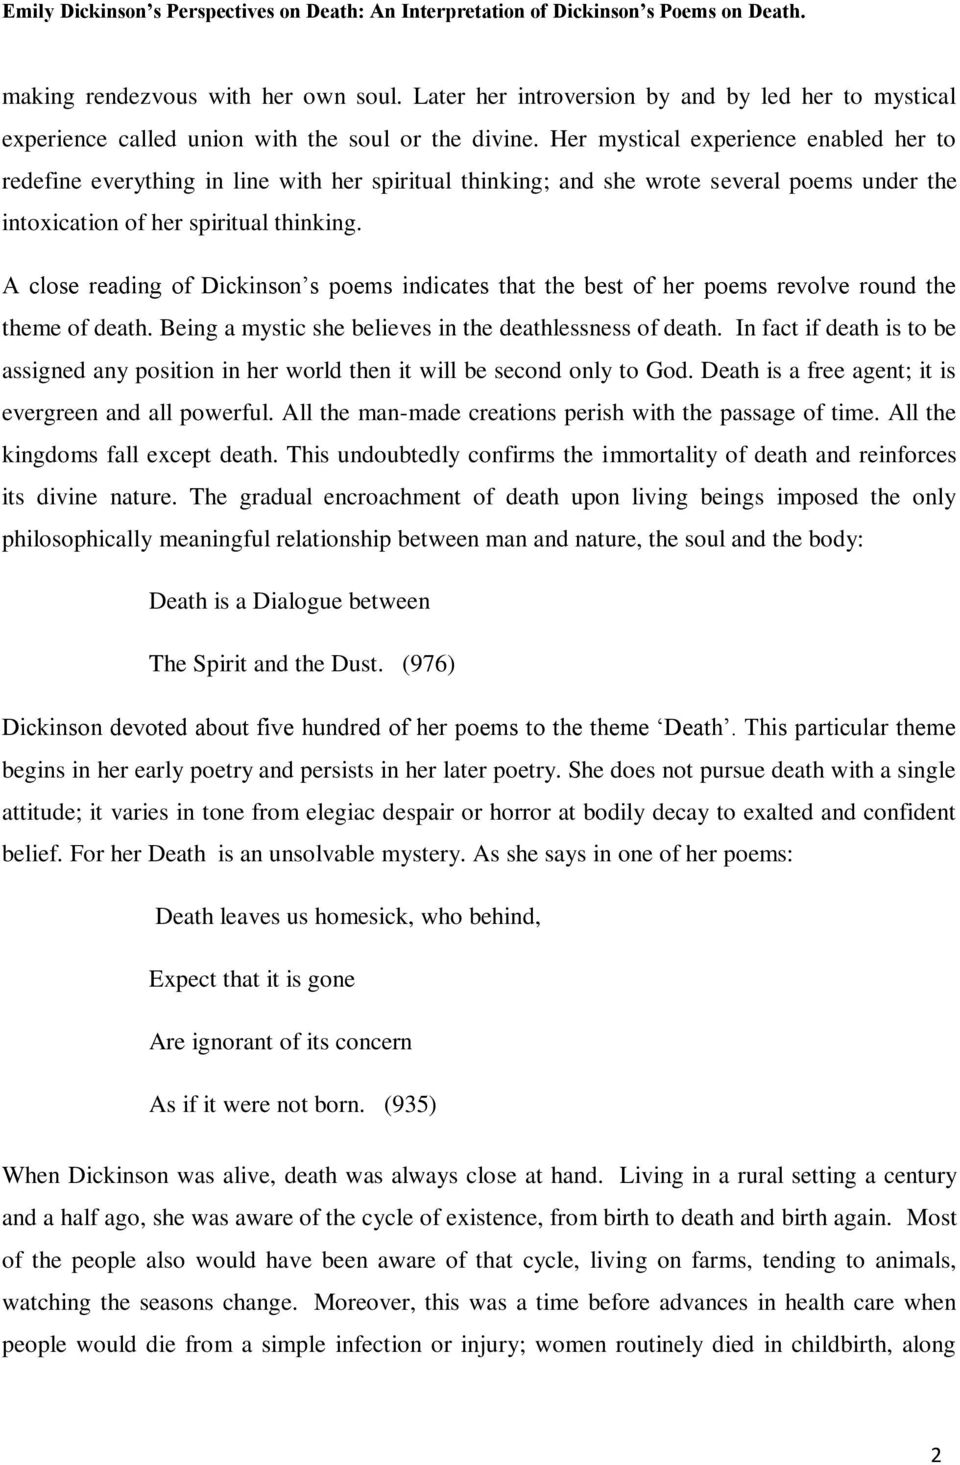 Emily Dickinson s Perspectives on Death: An Interpretation of